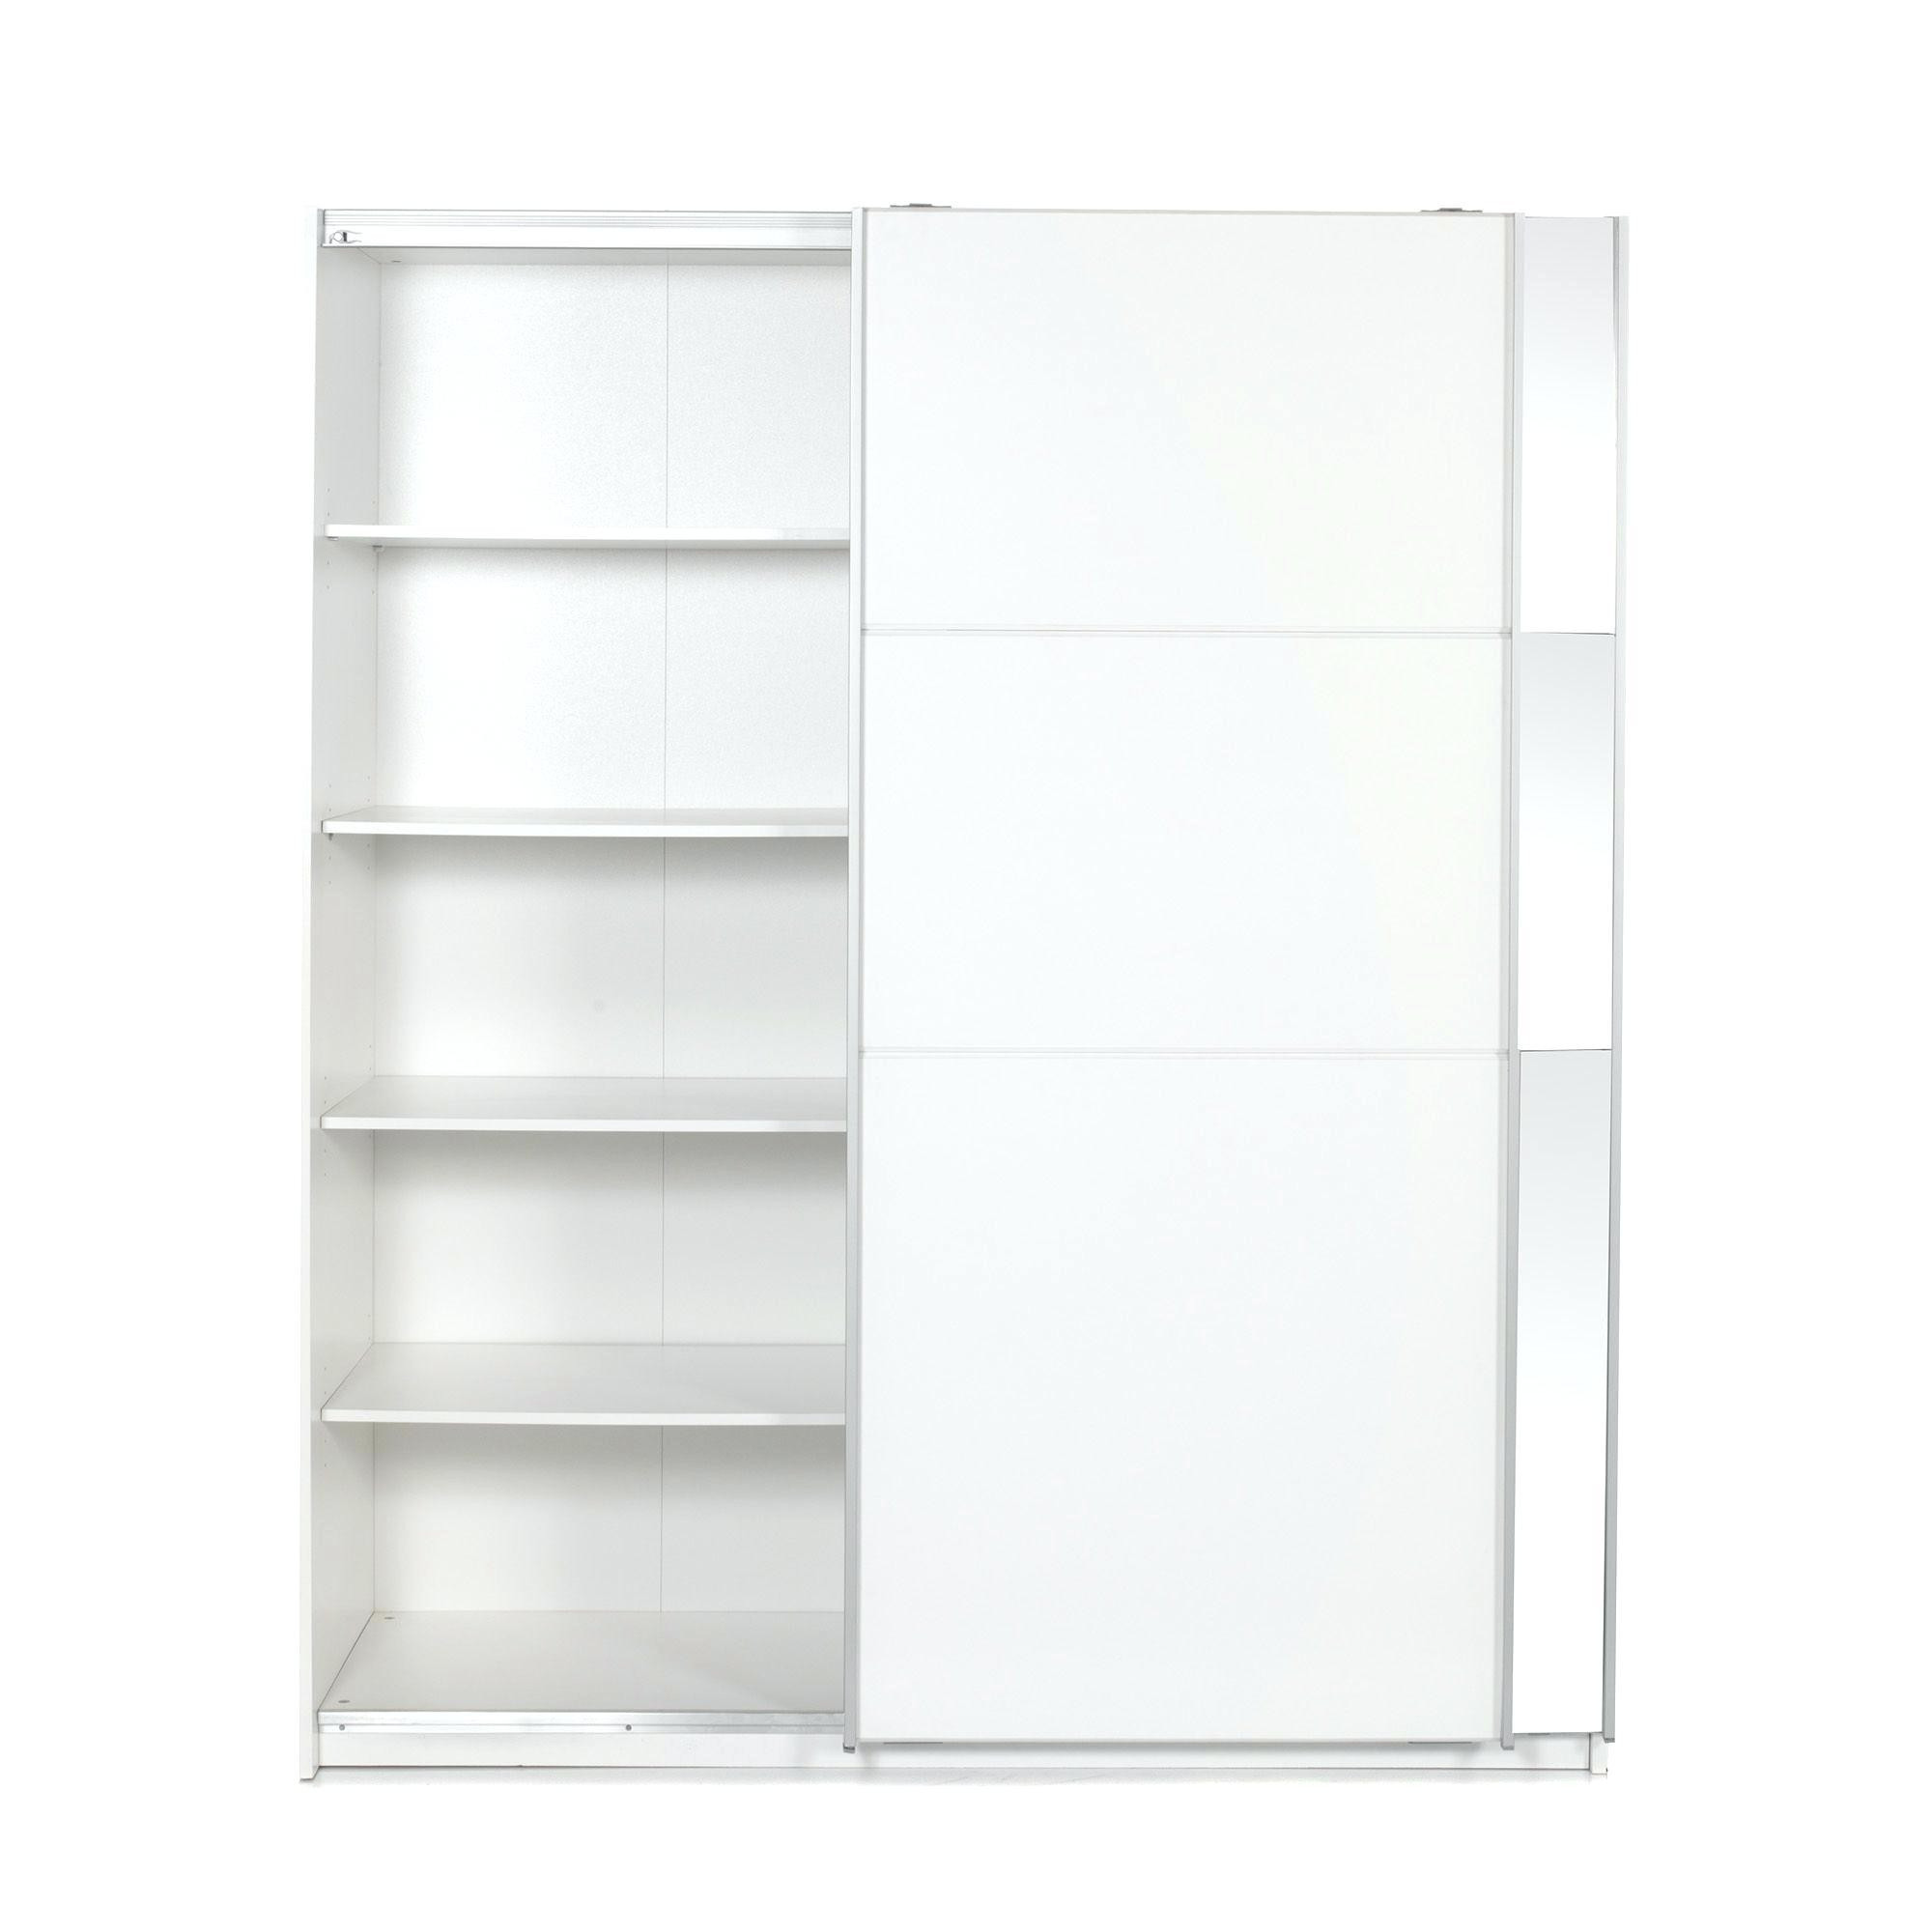 Armoire Conforama Ebene 74 Conception Armoire 2 Portes Coulissantes Glass